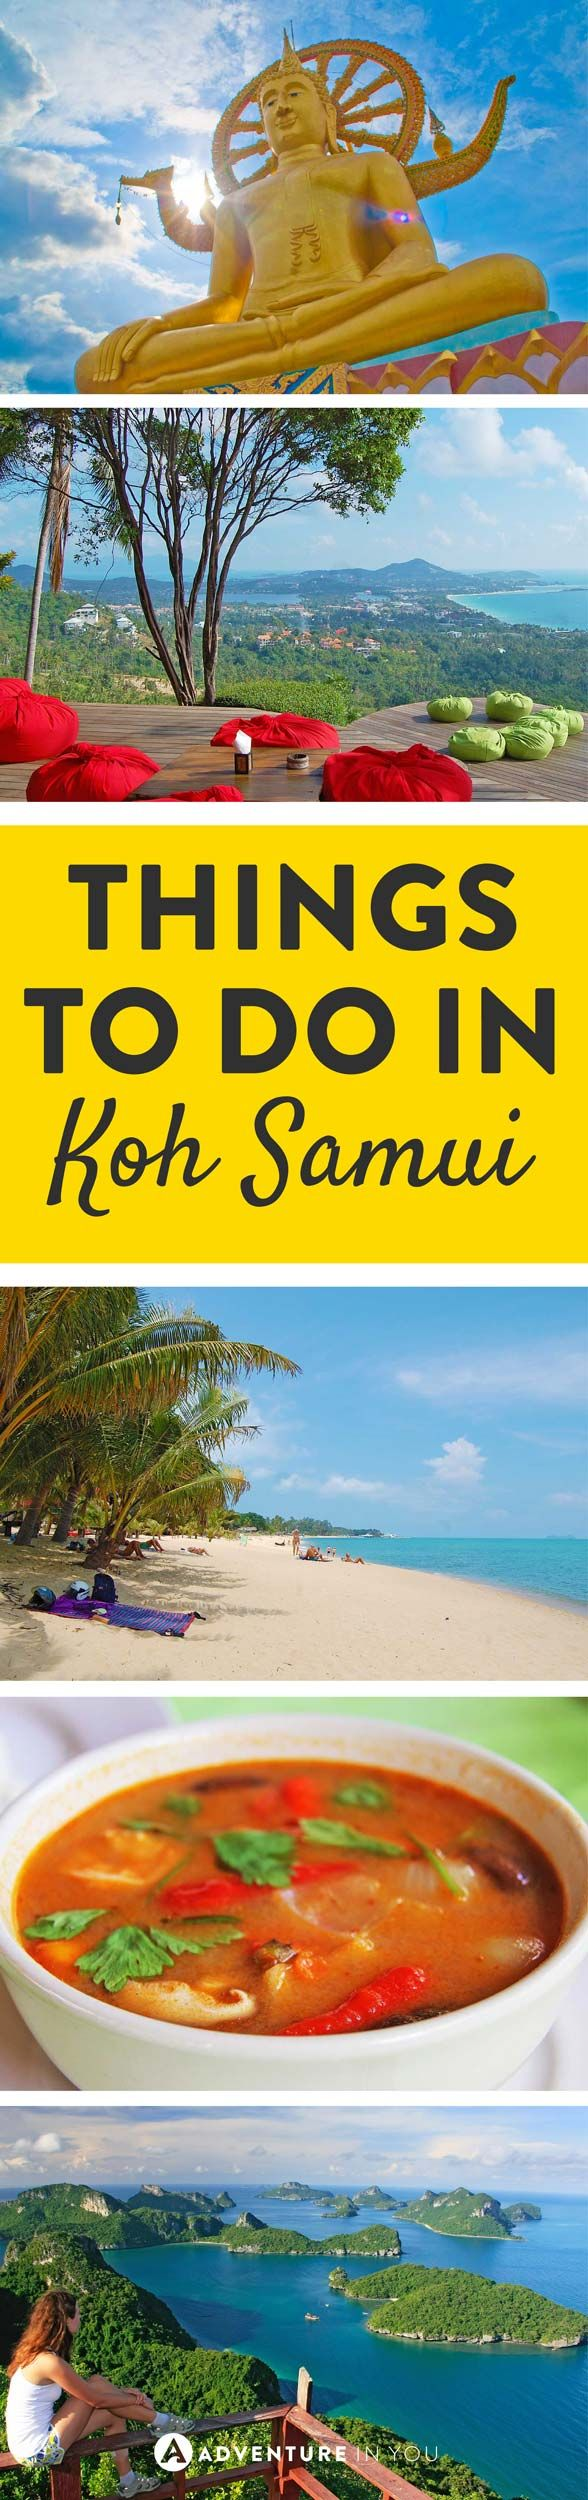 Koh Samui | Looking for things to do in Koh Samui? After spending almost two weeks in Koh Samui, here is our list of a few of our favorite things to do while in Koh Samui Thailand.